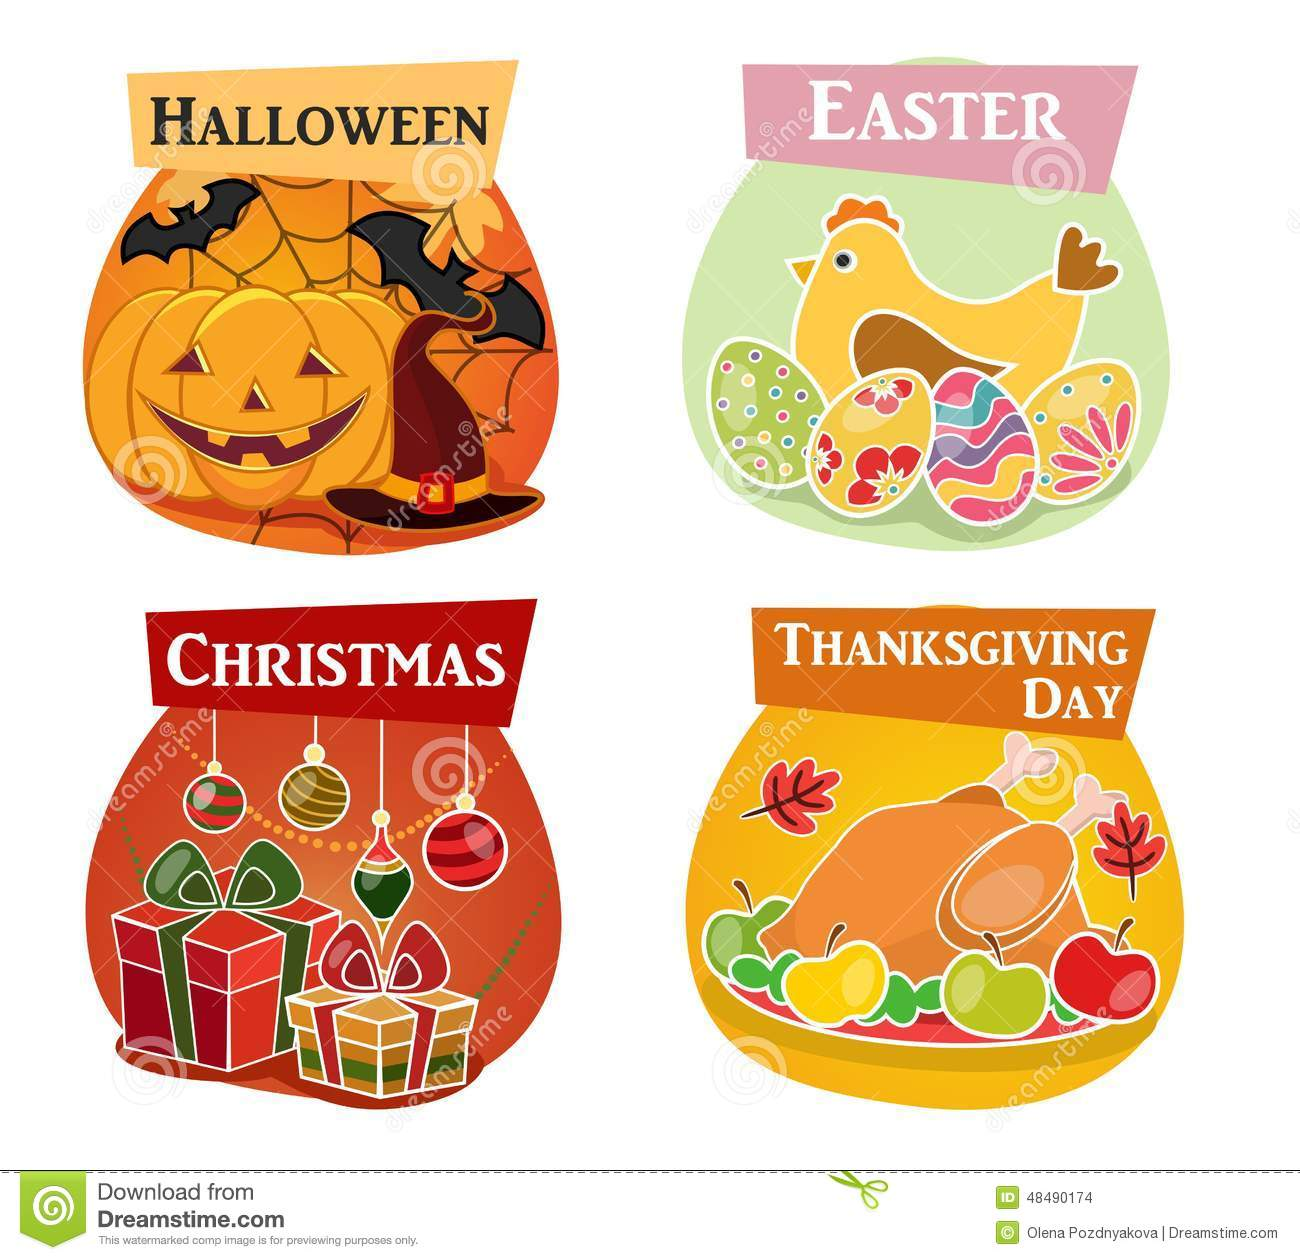 Thanksgiving Day Easter Halloween Christmas Flat Icons